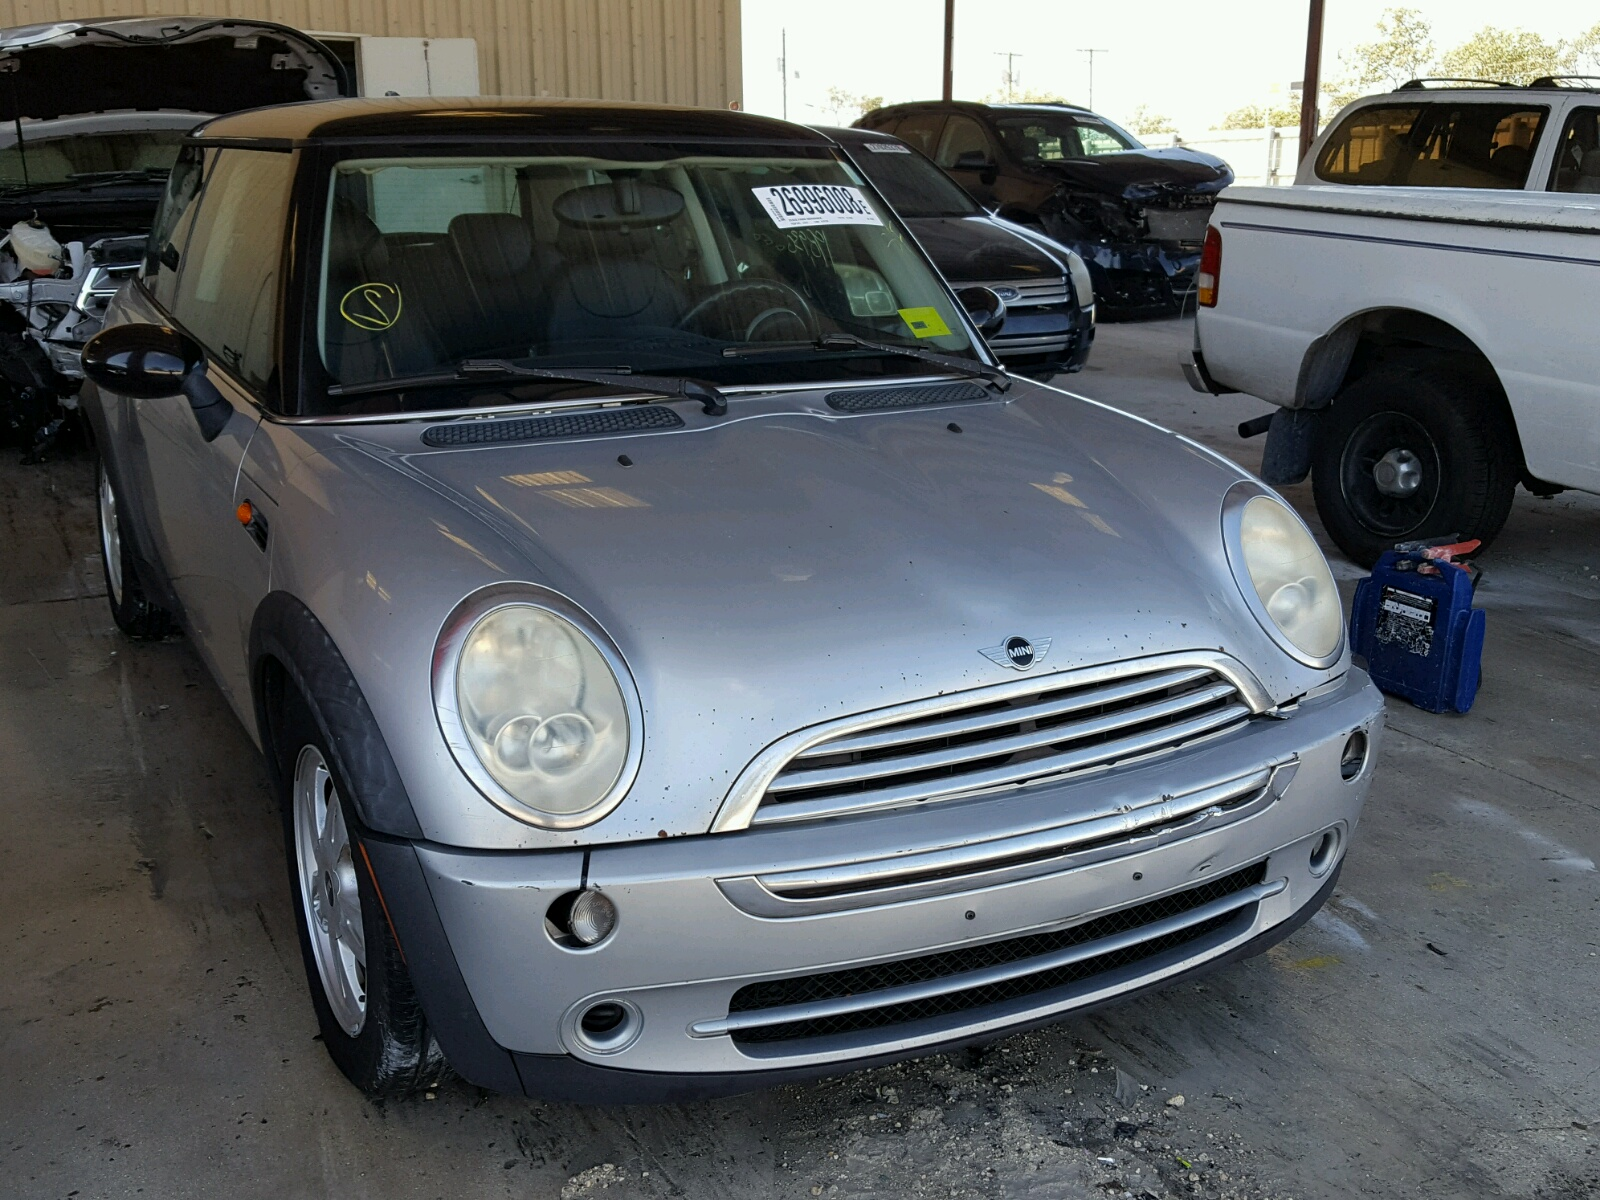 Auto Auction Ended on VIN WMWRC TK 2006 MINI COOPER in FL